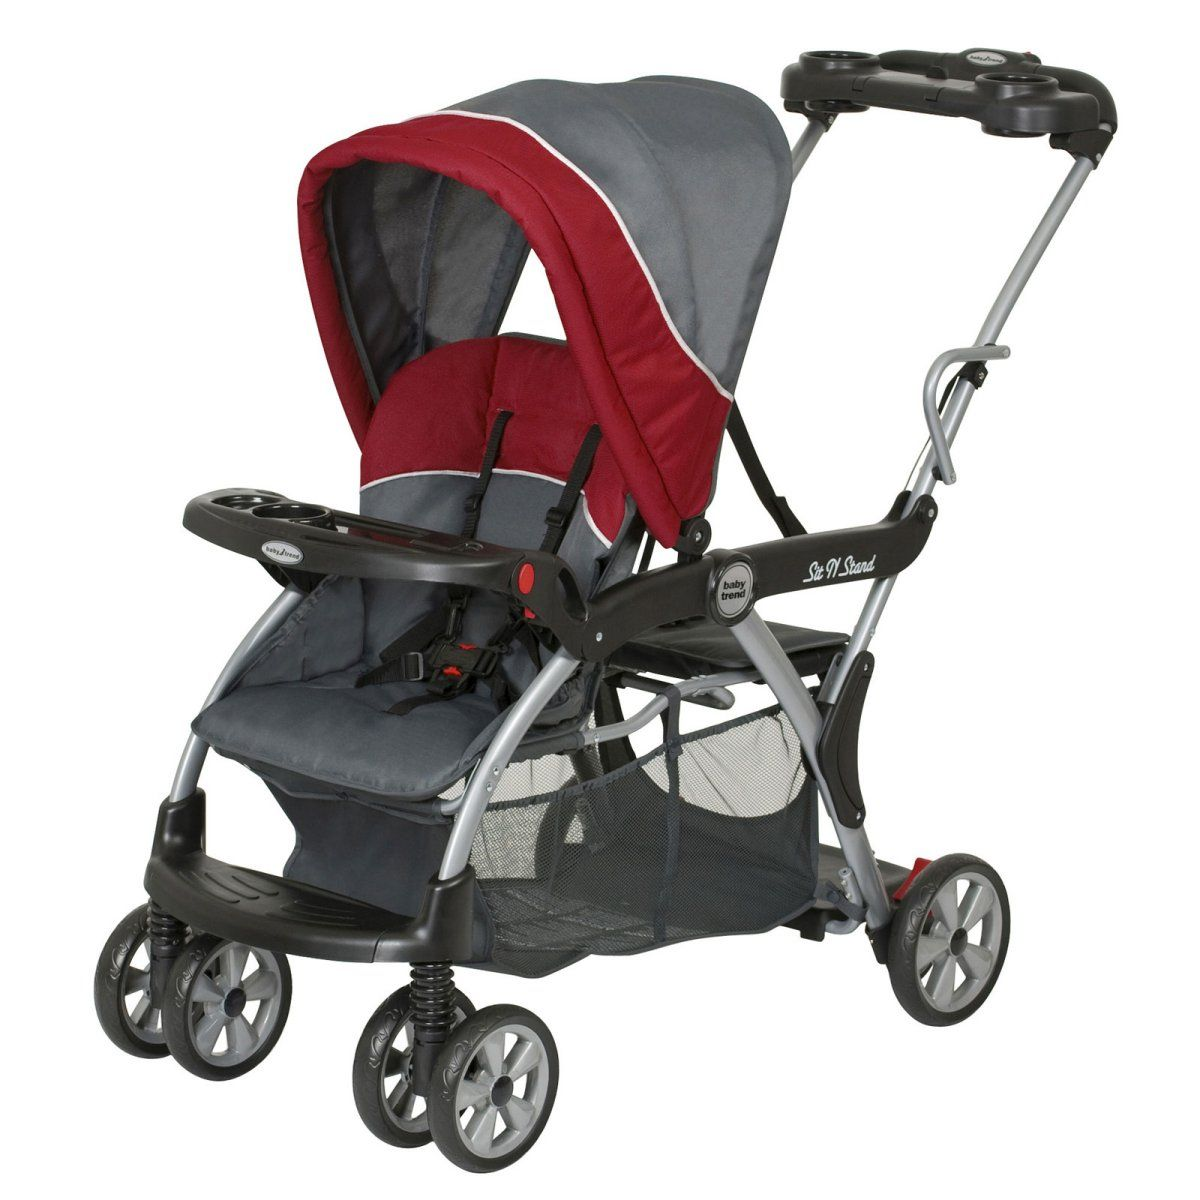 Baby Trend Sit N Stand Single DX strollerBaltic Baby